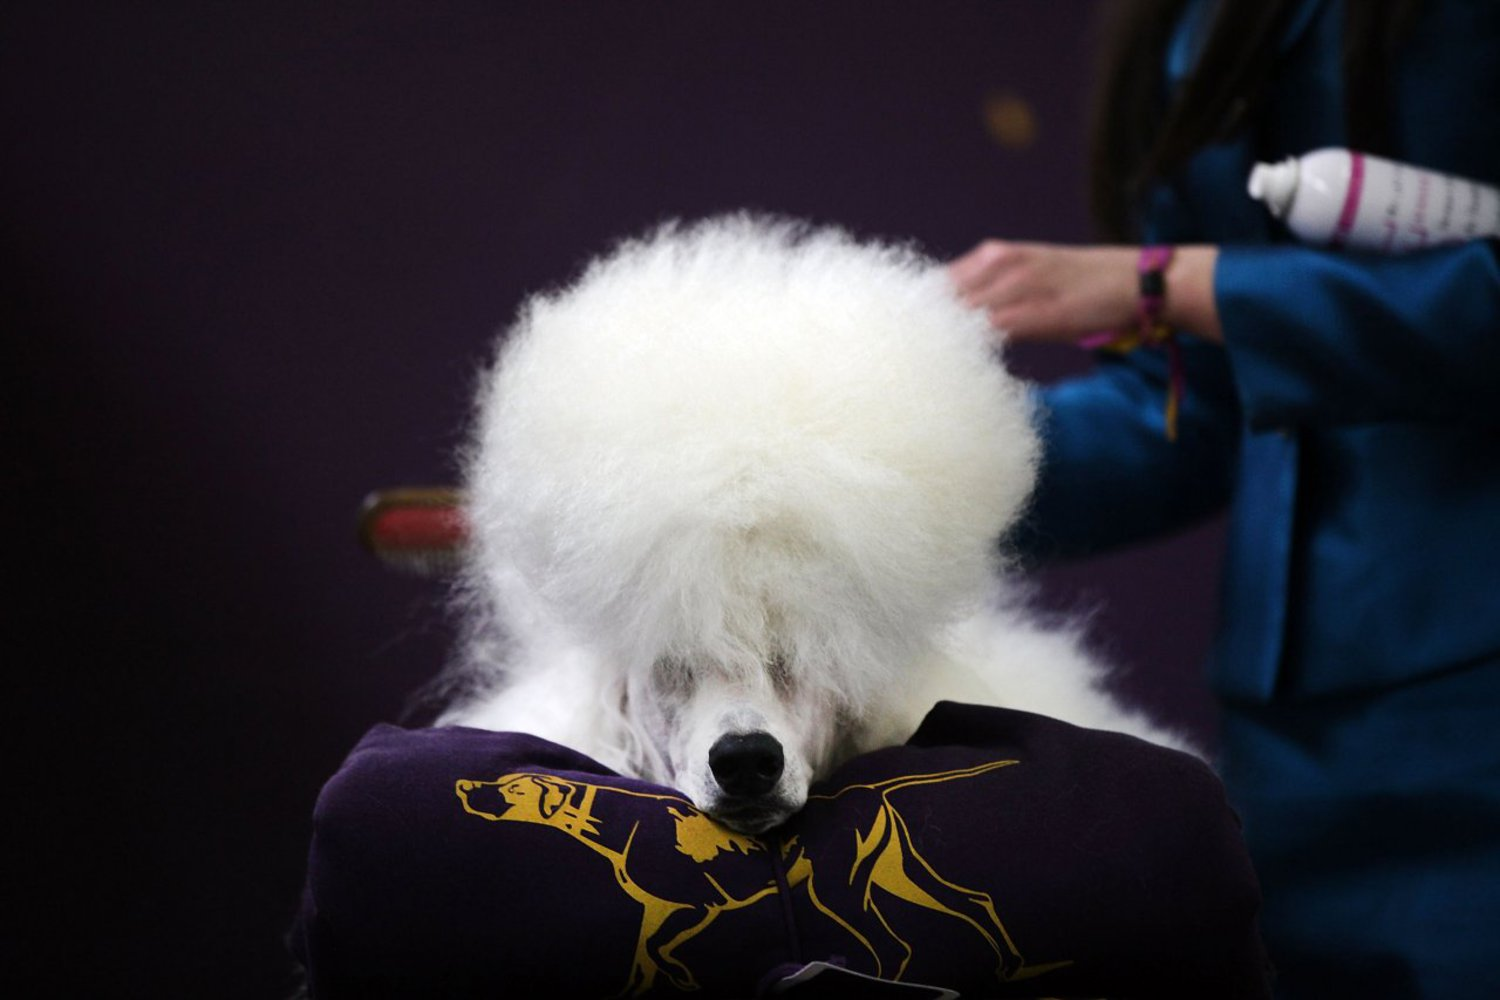 A standard poodle named Paris has his hair done at the Westminster show on February 16, 2015. The show is described as the second-longest continuously running sporting event in the United States. It included 192 dog breeds and drew nearly 3,000 global competitors.